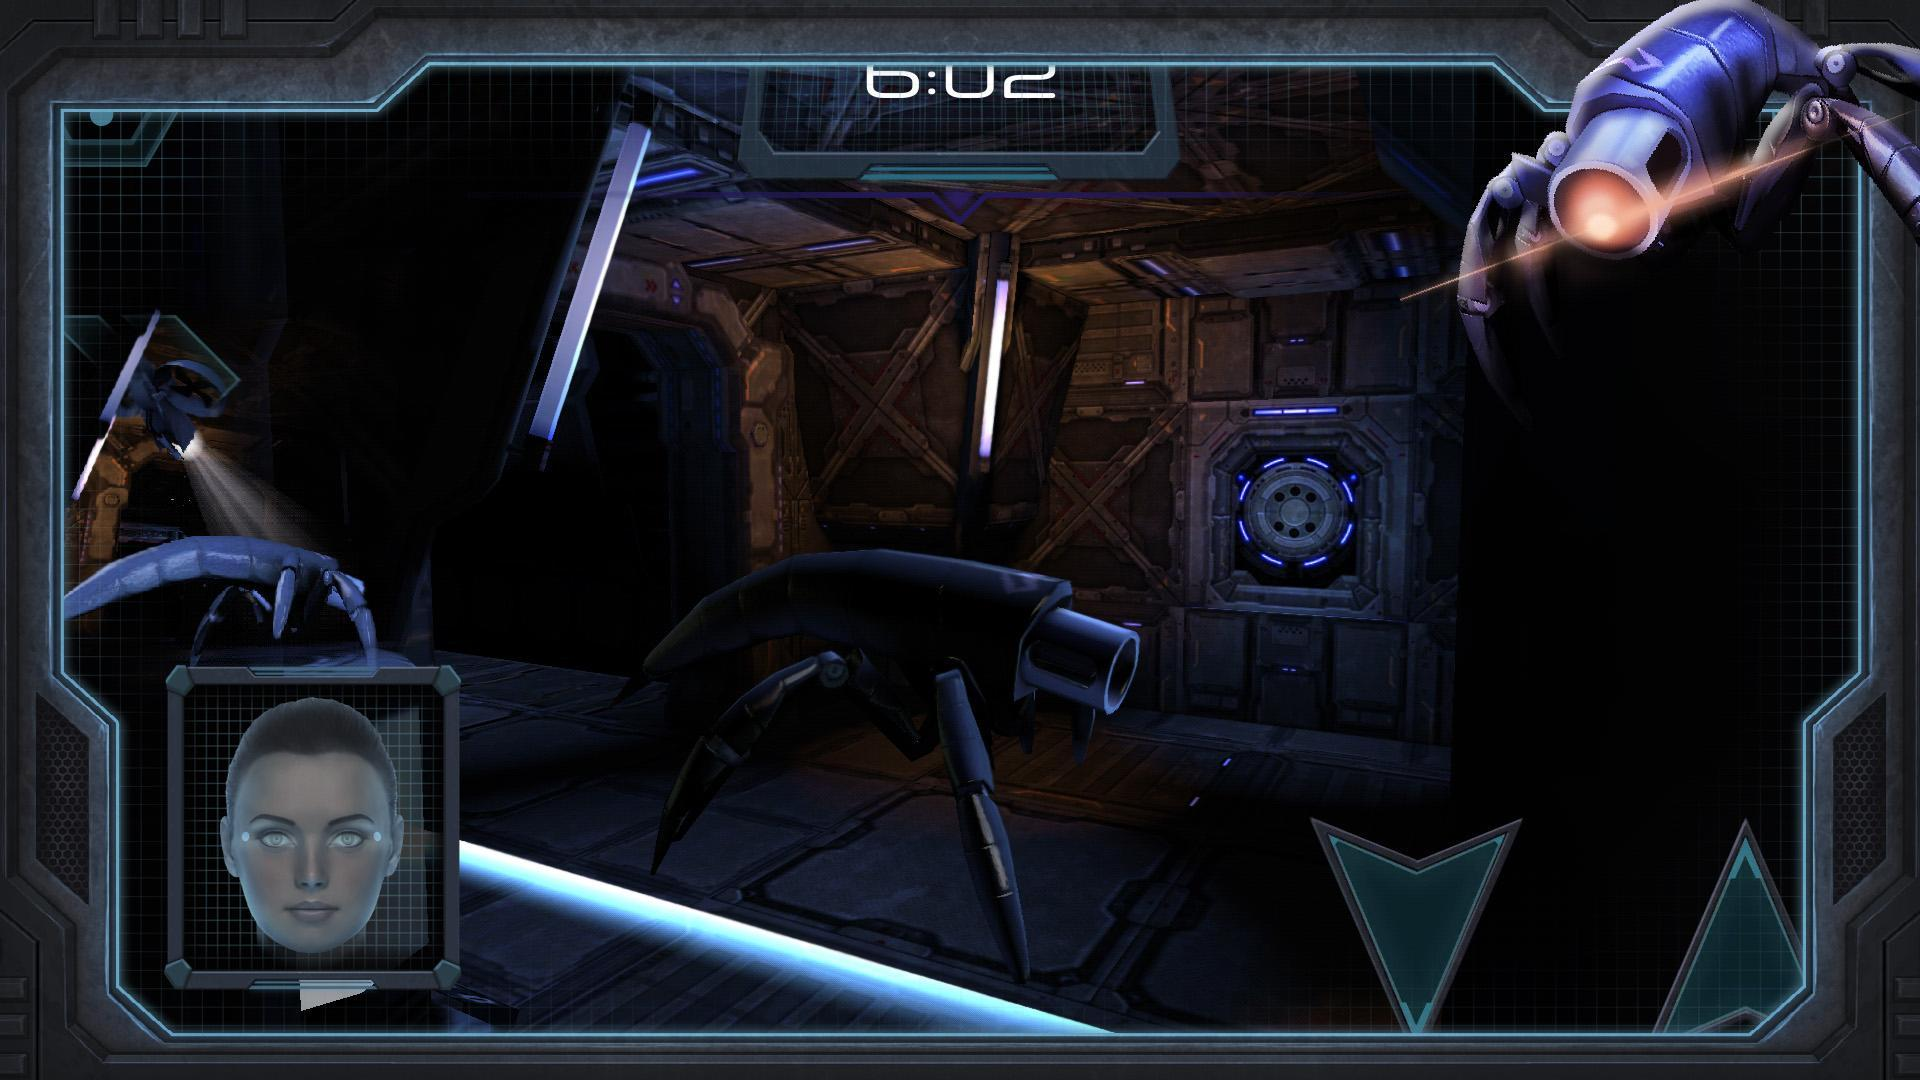 Sci-Fi Adventure Quest 3D - Space 3000 for Android - APK Download